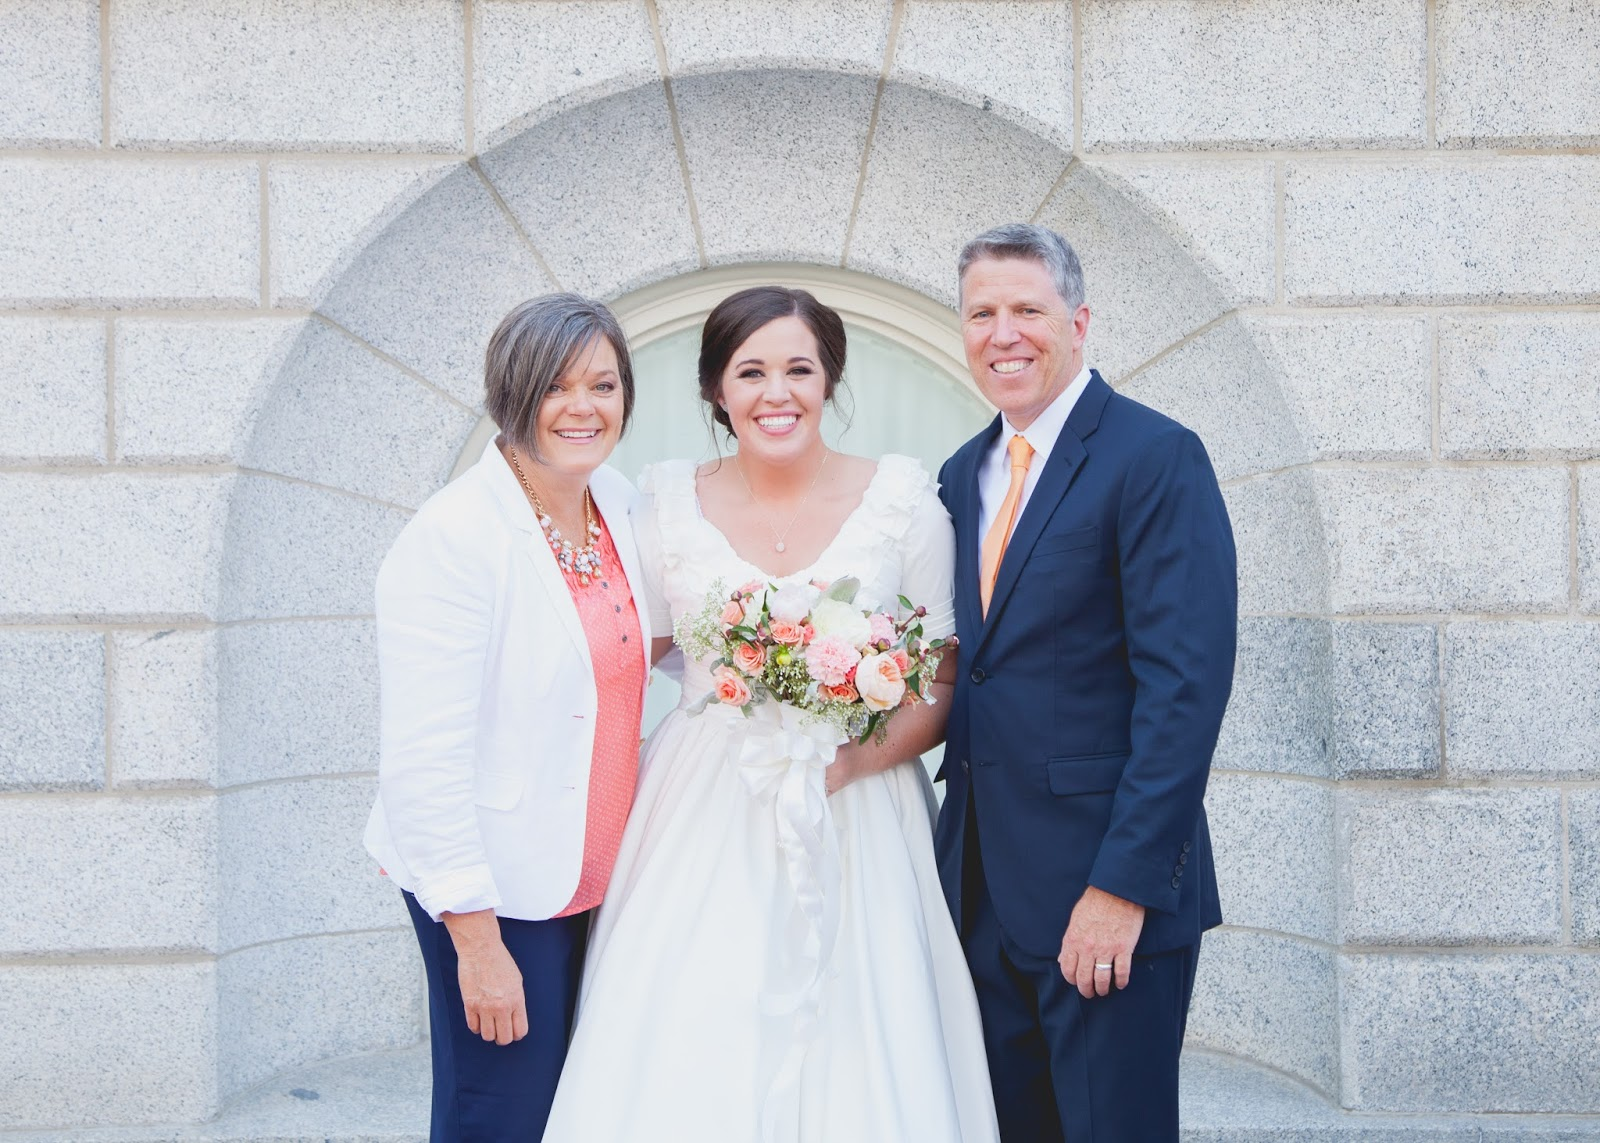 Peach and navy blue wedding with a hot dog bar part 1 the style emily and kevin were married in the salt lake temple in utah ombrellifo Choice Image